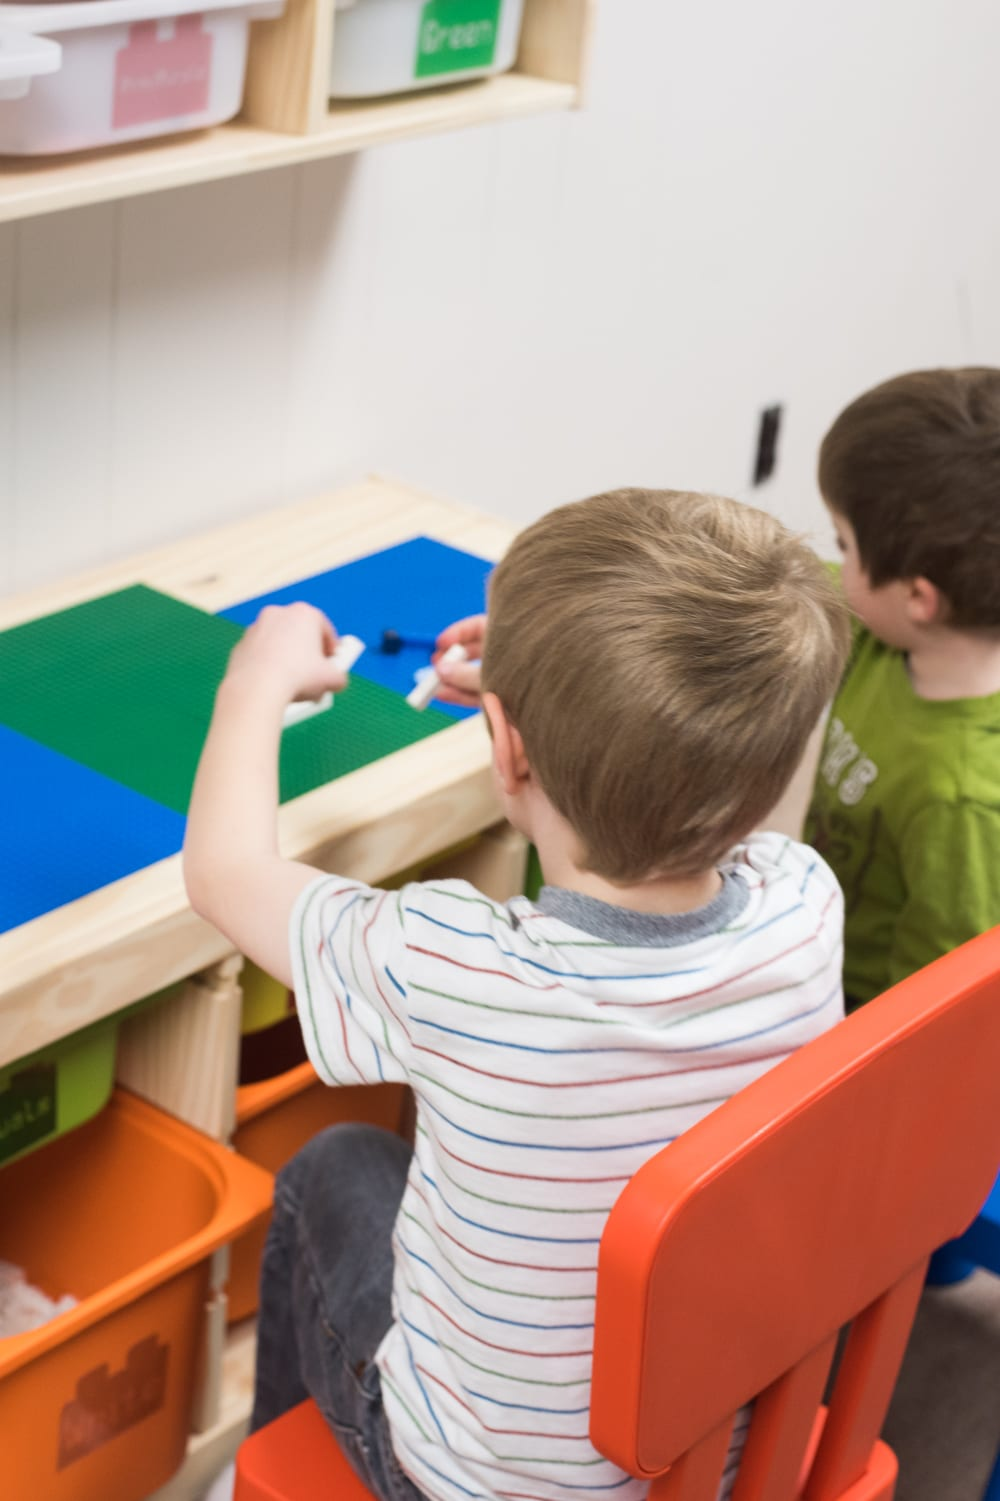 child sitting at lego table